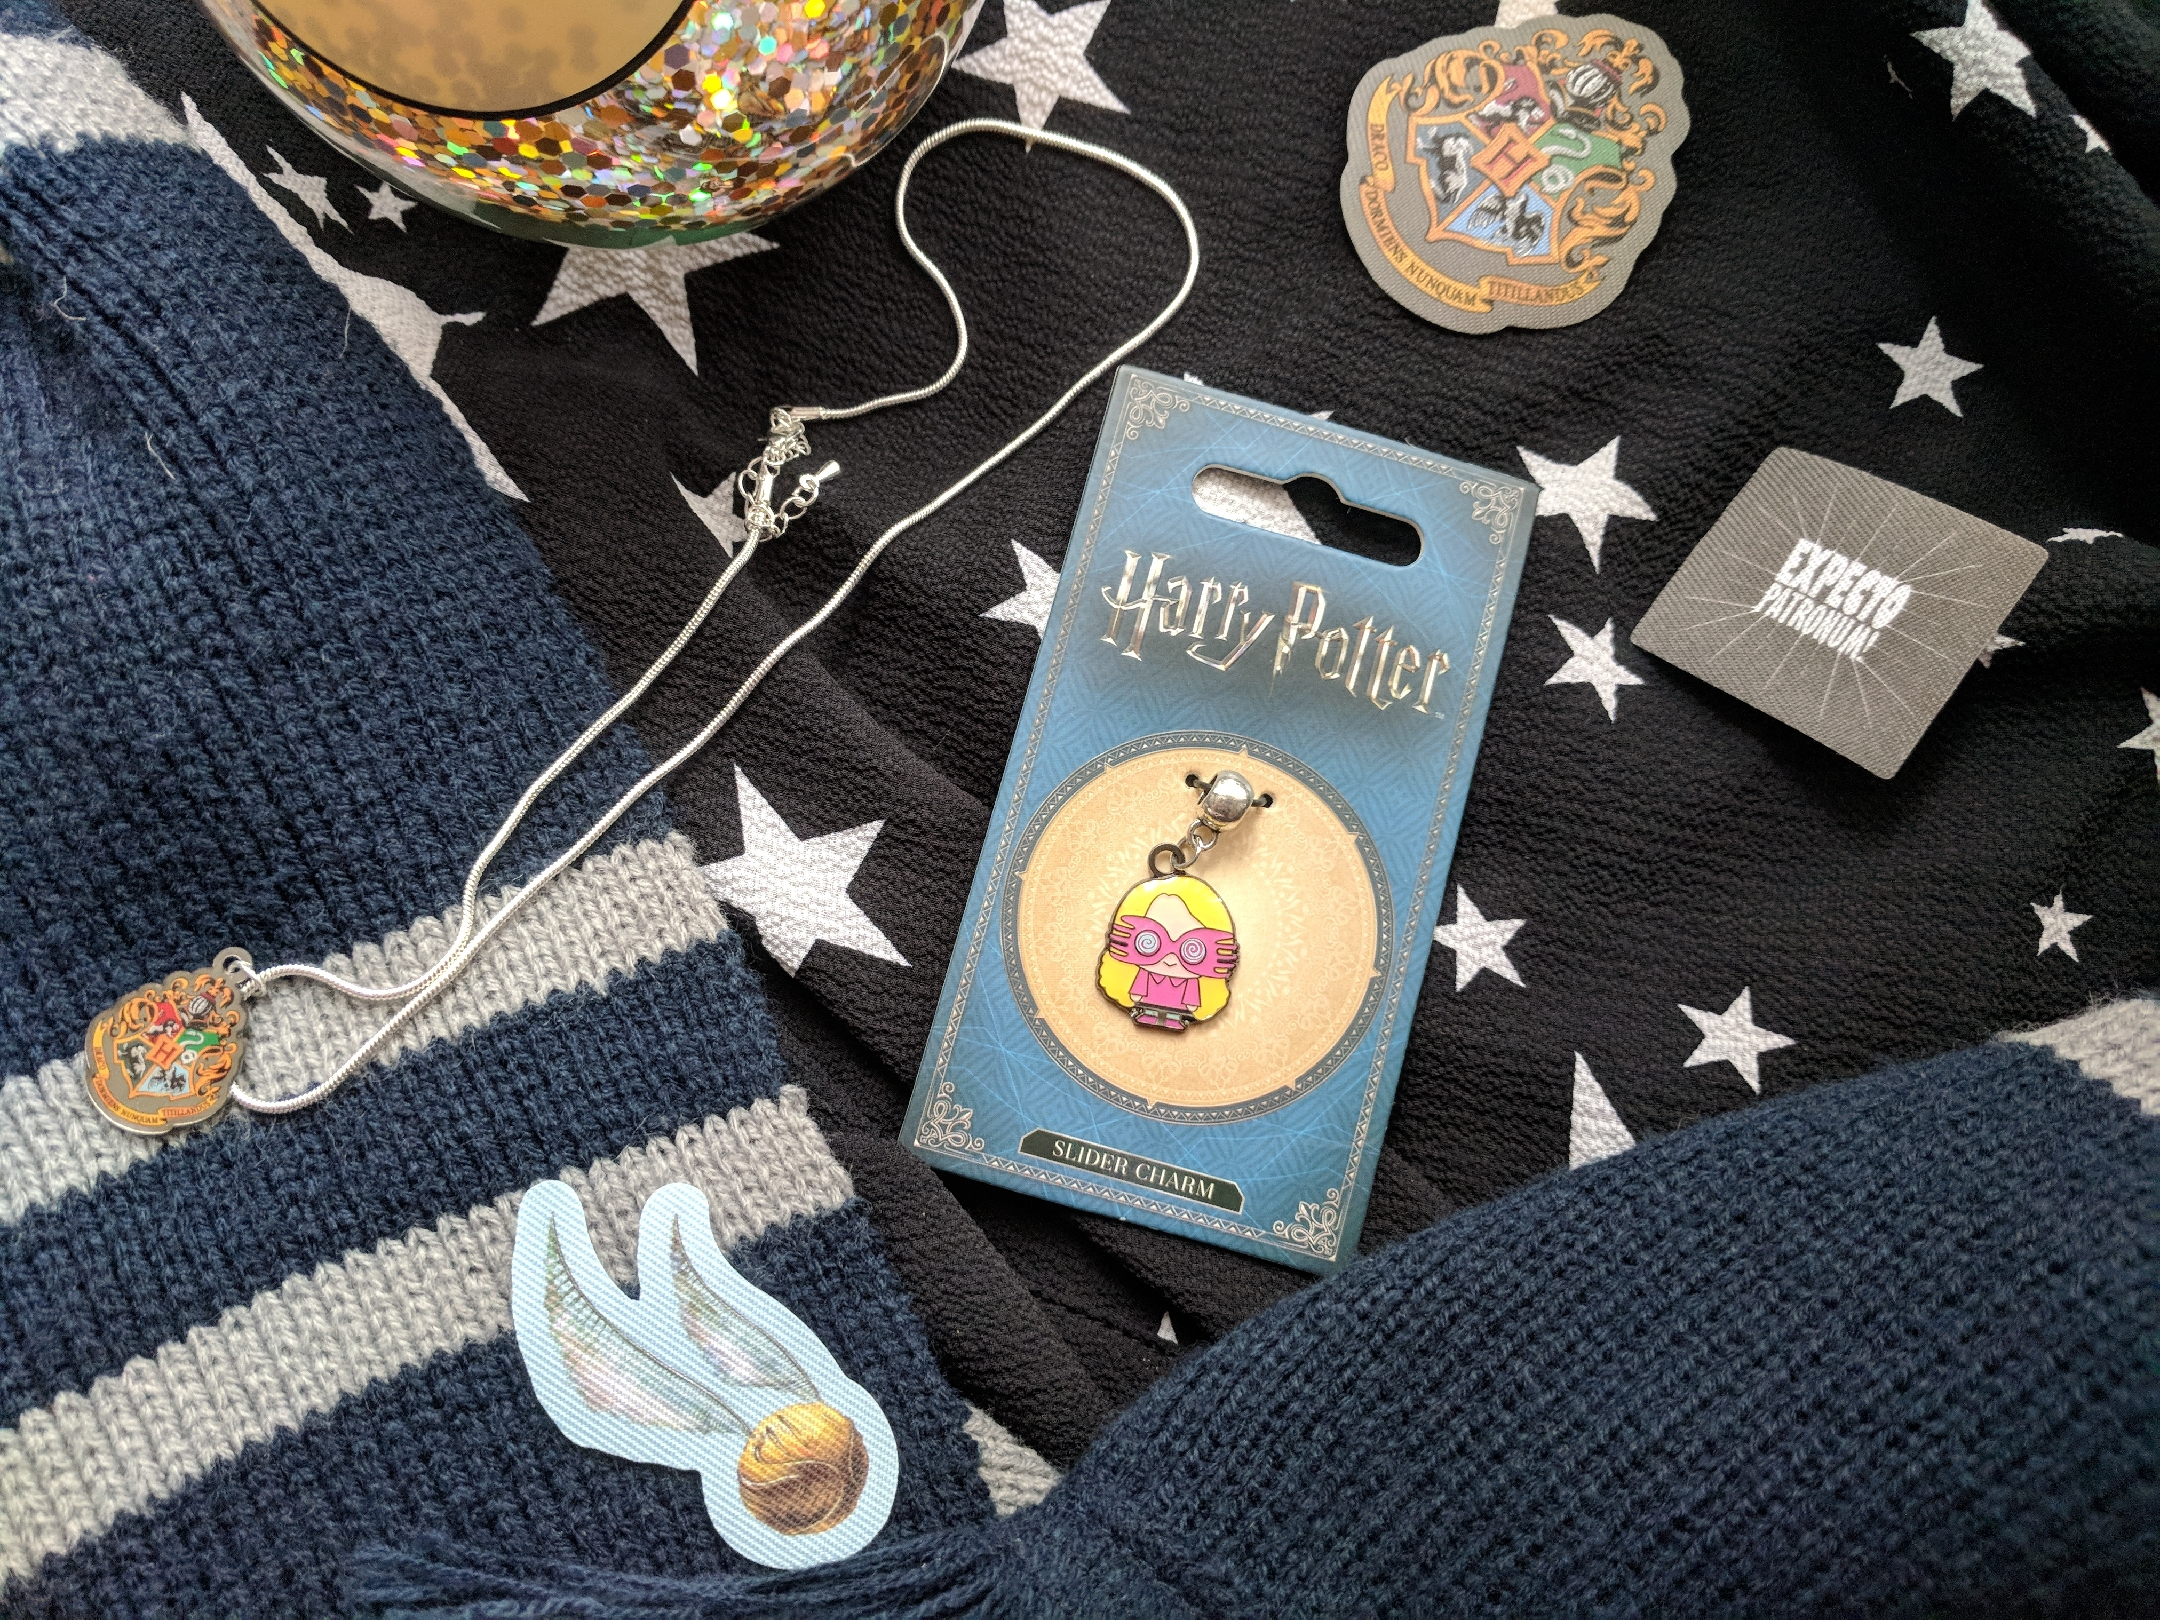 Magic Alley Harry Potter Small Business Geeky Gifts